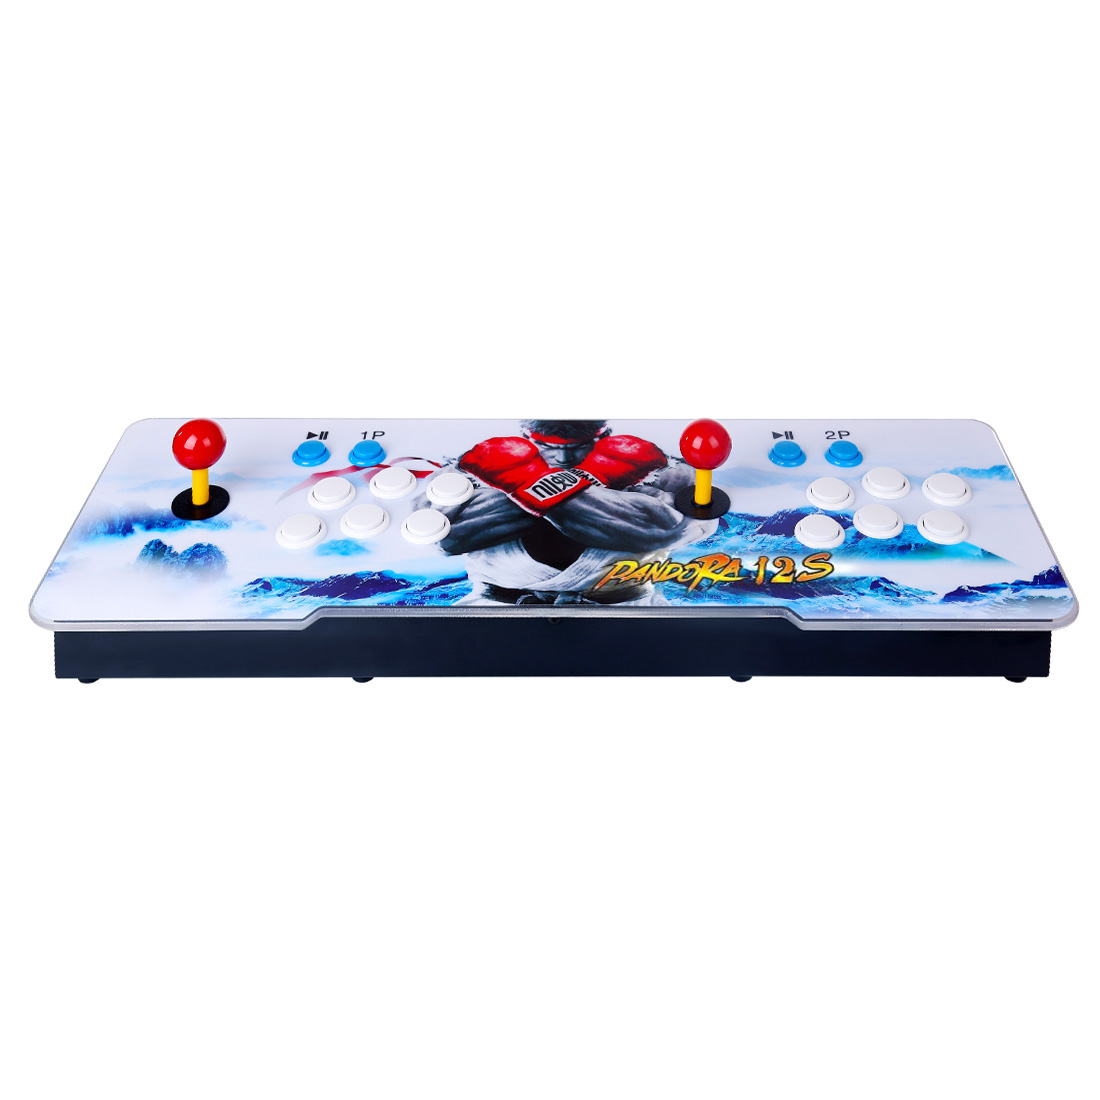 Pandora Box 3D 12S Wifi Version 3333 Games Multi-player Arcade Game Console, Can Download More Games (Artwork: Colorful Dragon)